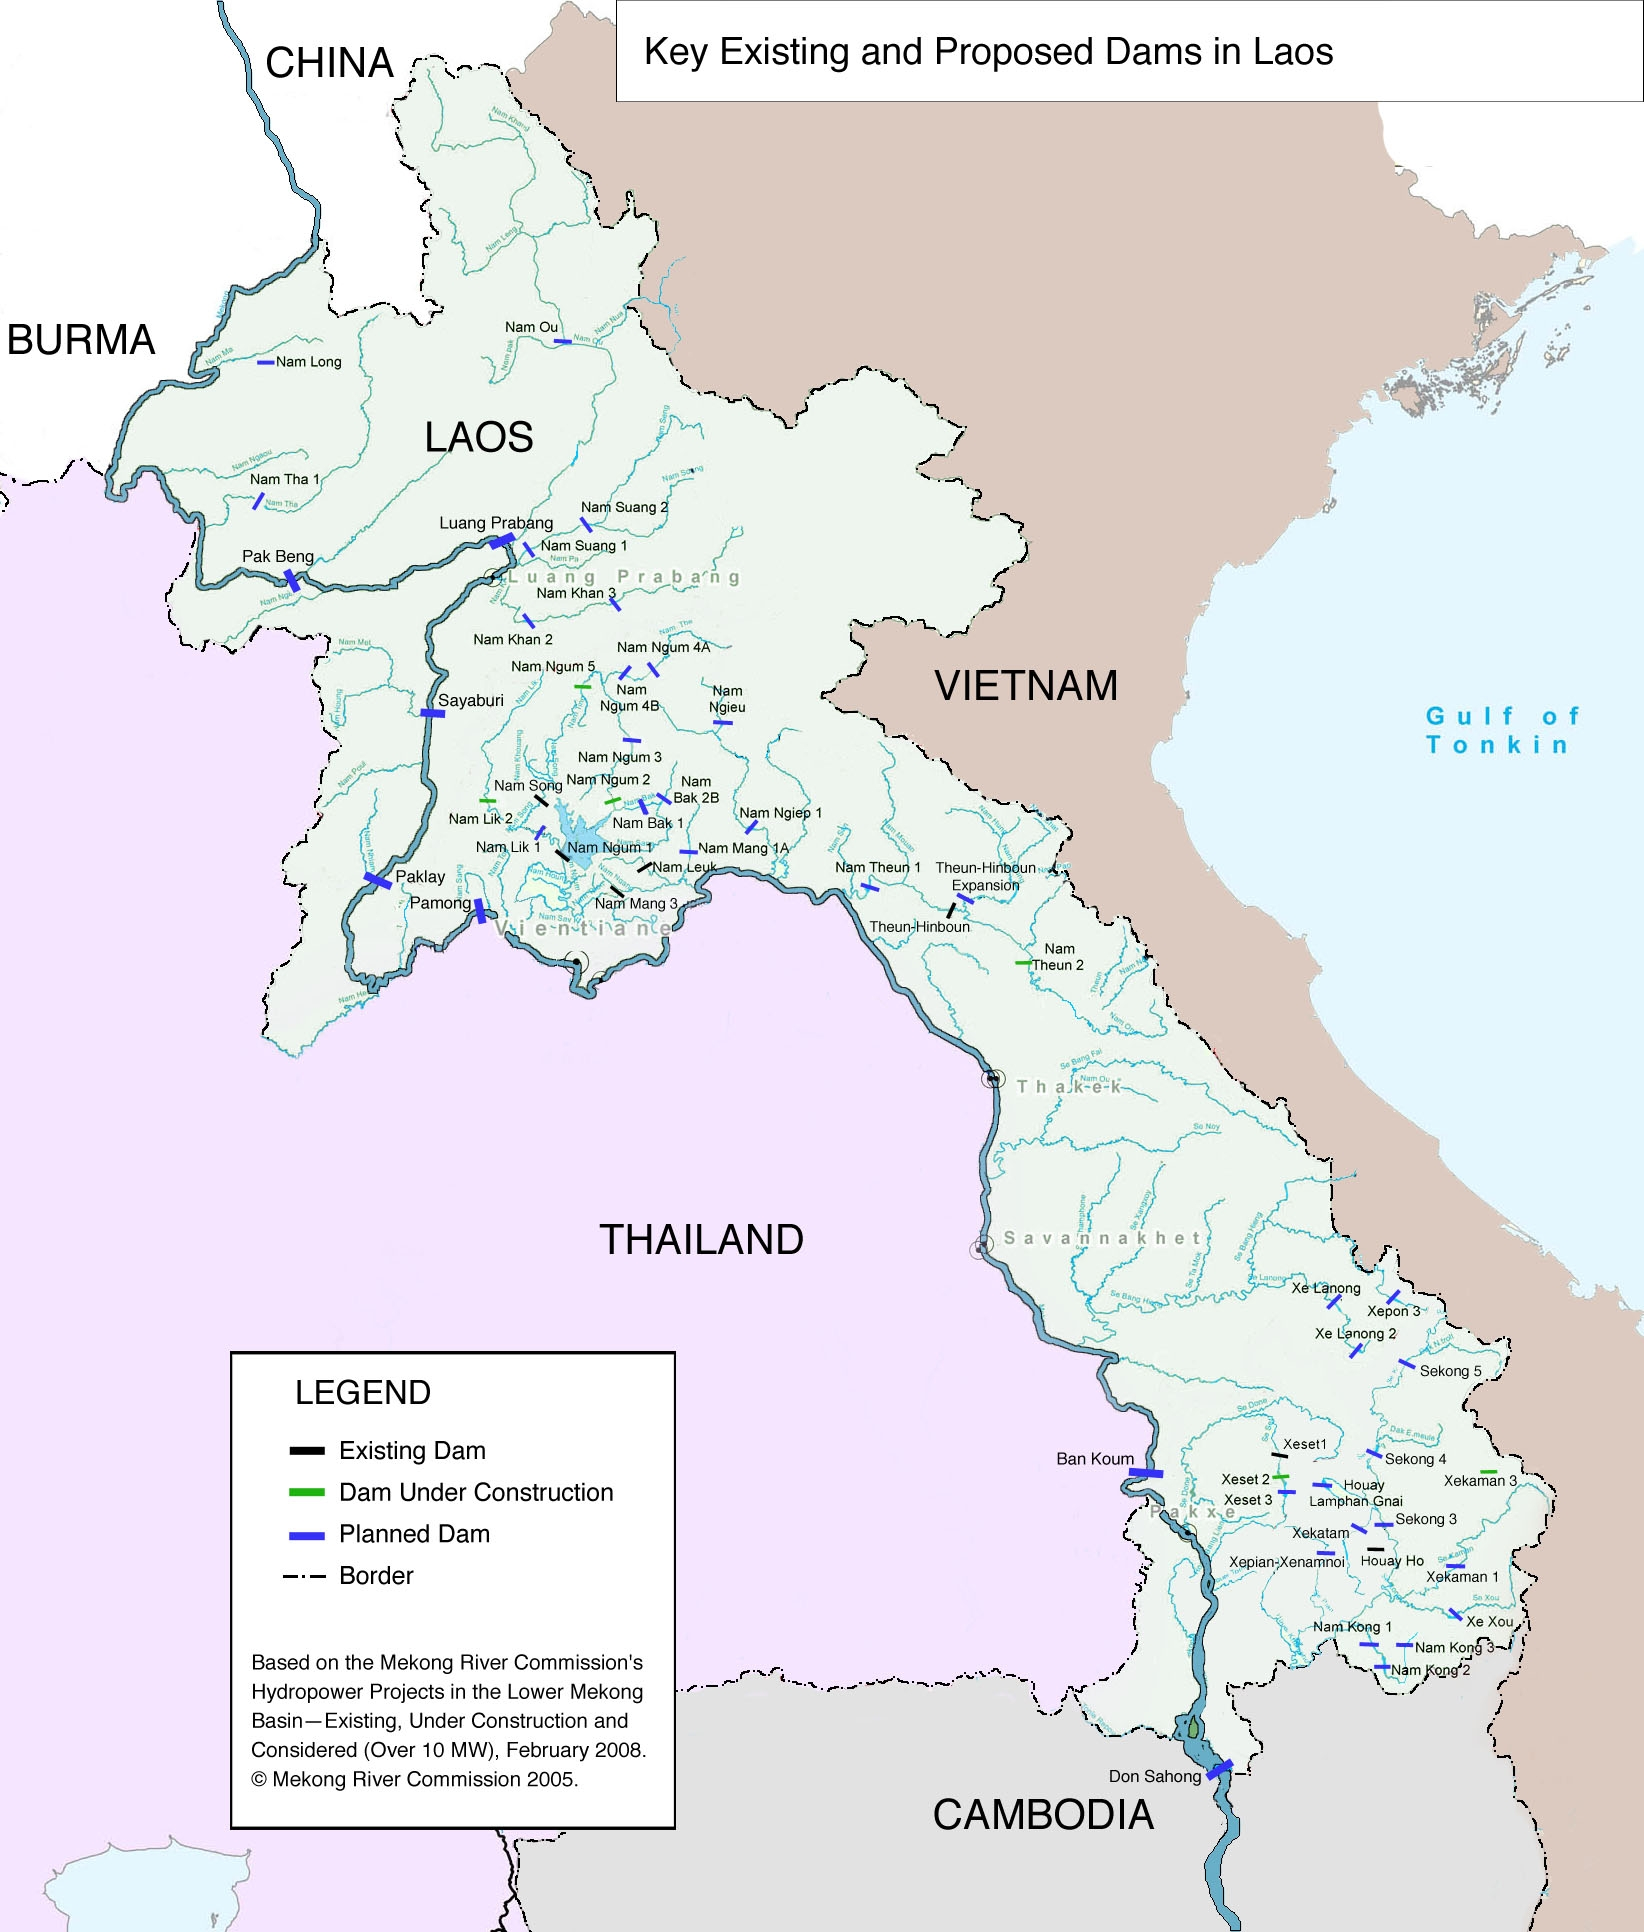 Proposed dams on the Mekong River